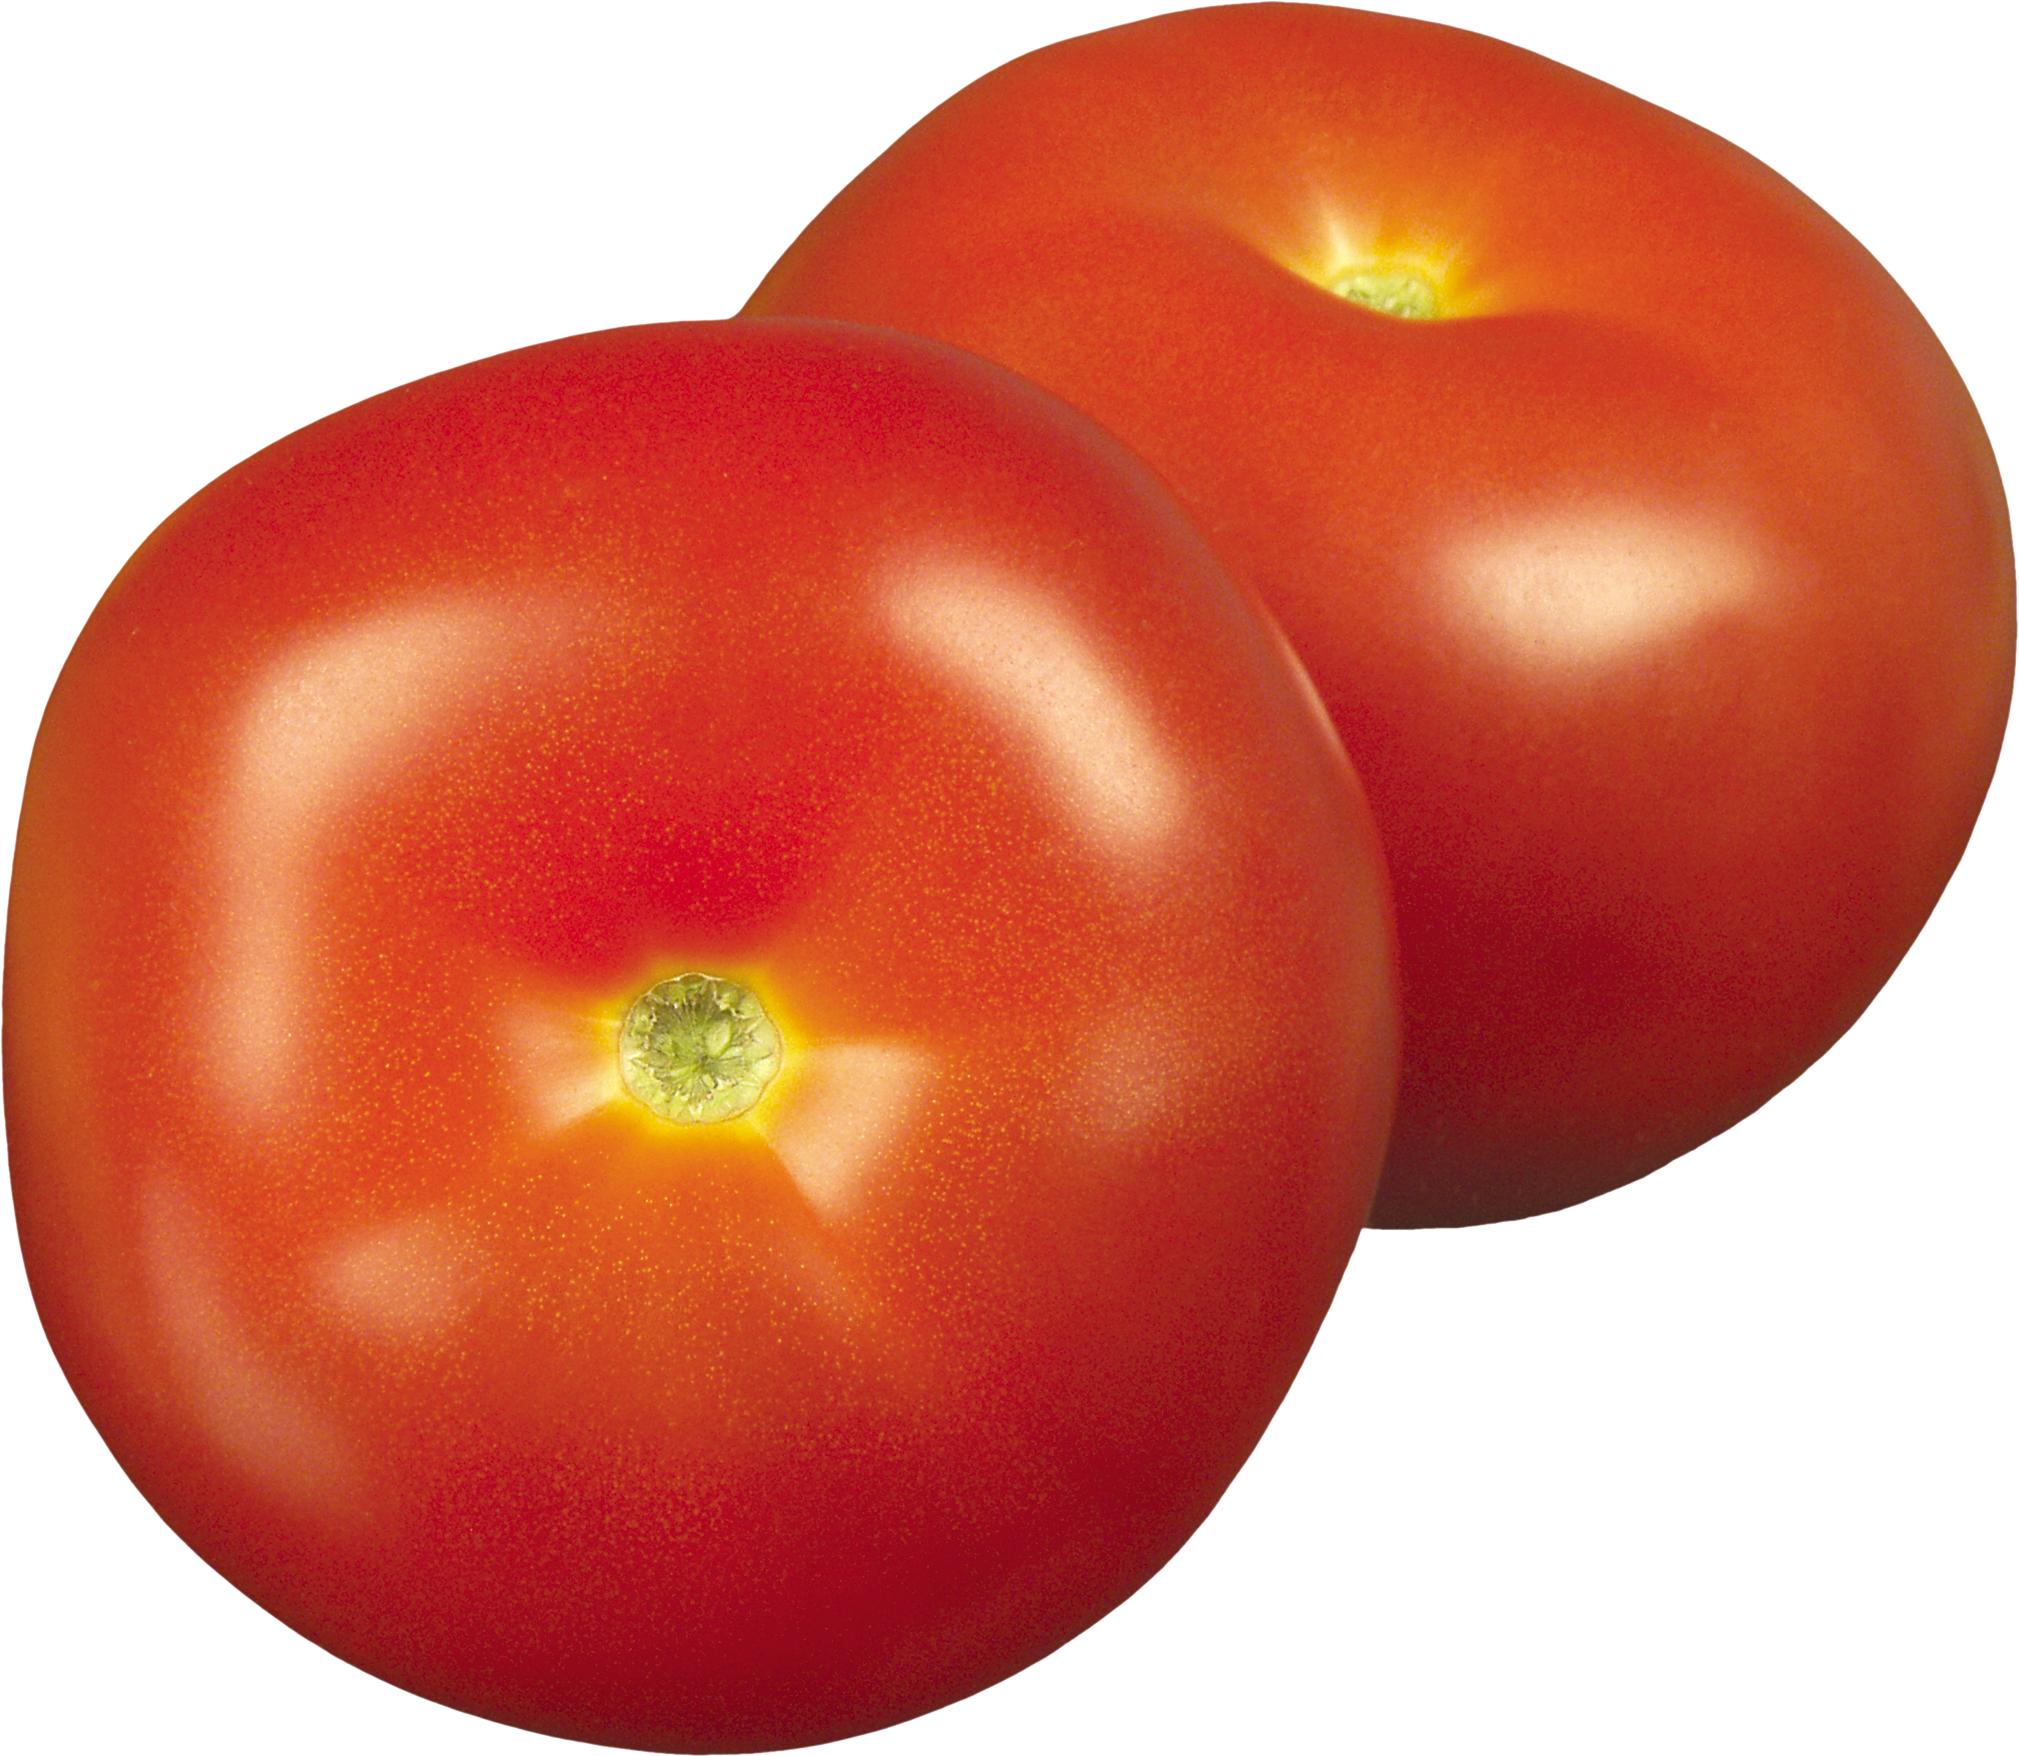 Tomato Png Image Clipart Free Clip Art Images